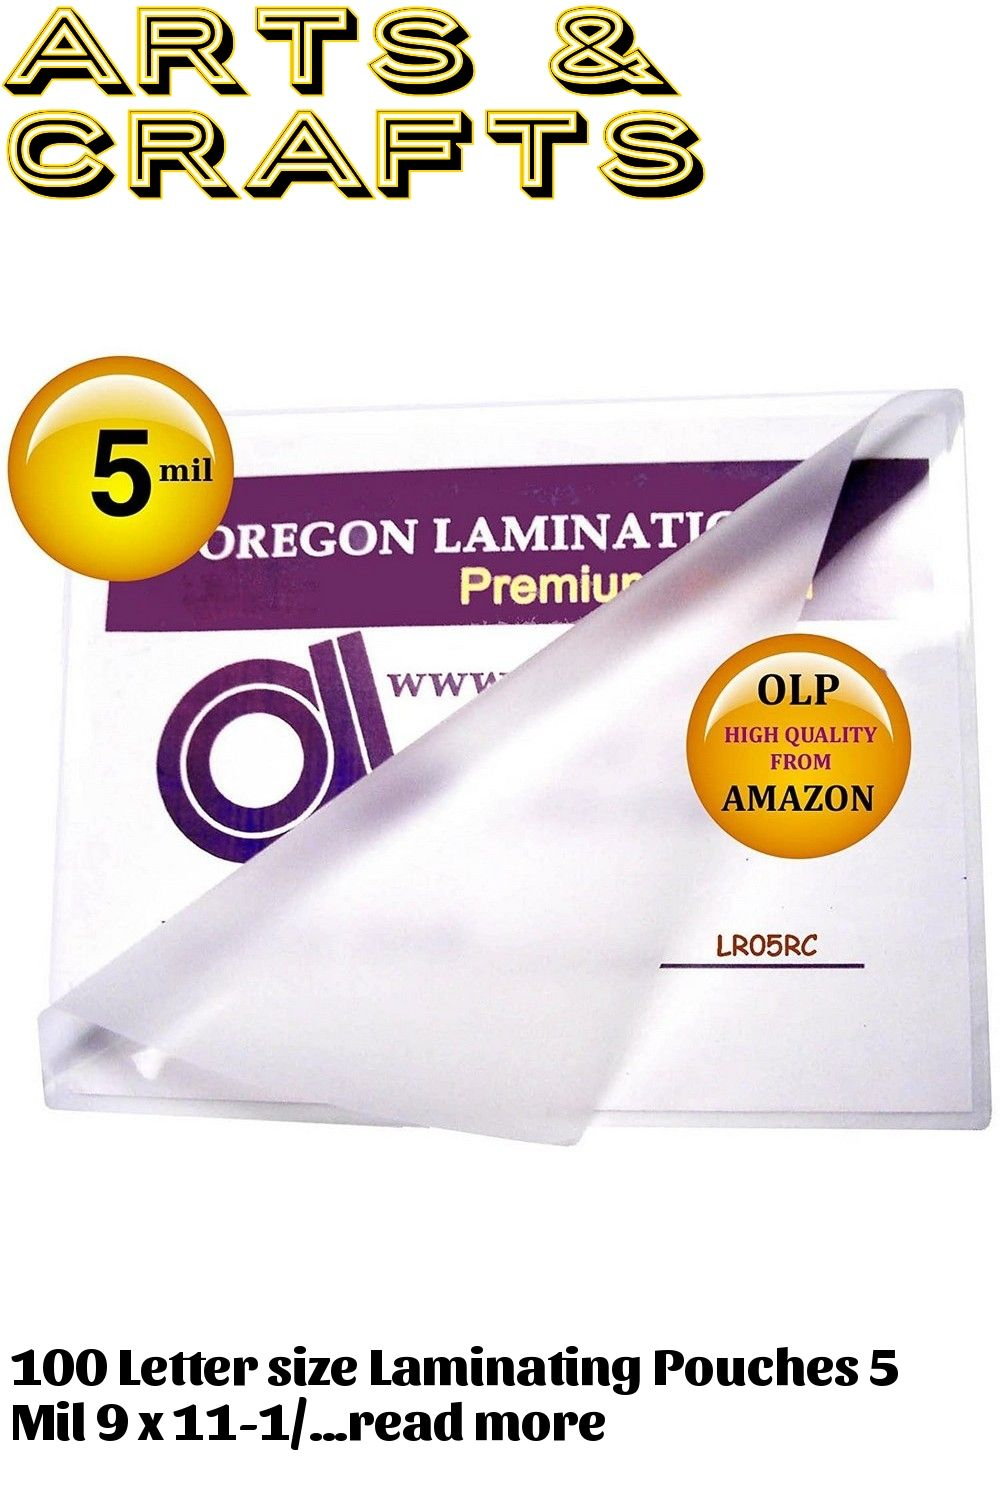 Letter Laminating Pouches 5 Mil 9 X 11 1 2 Hot Qty 100 In 2020 Lettering Letter Size The 100